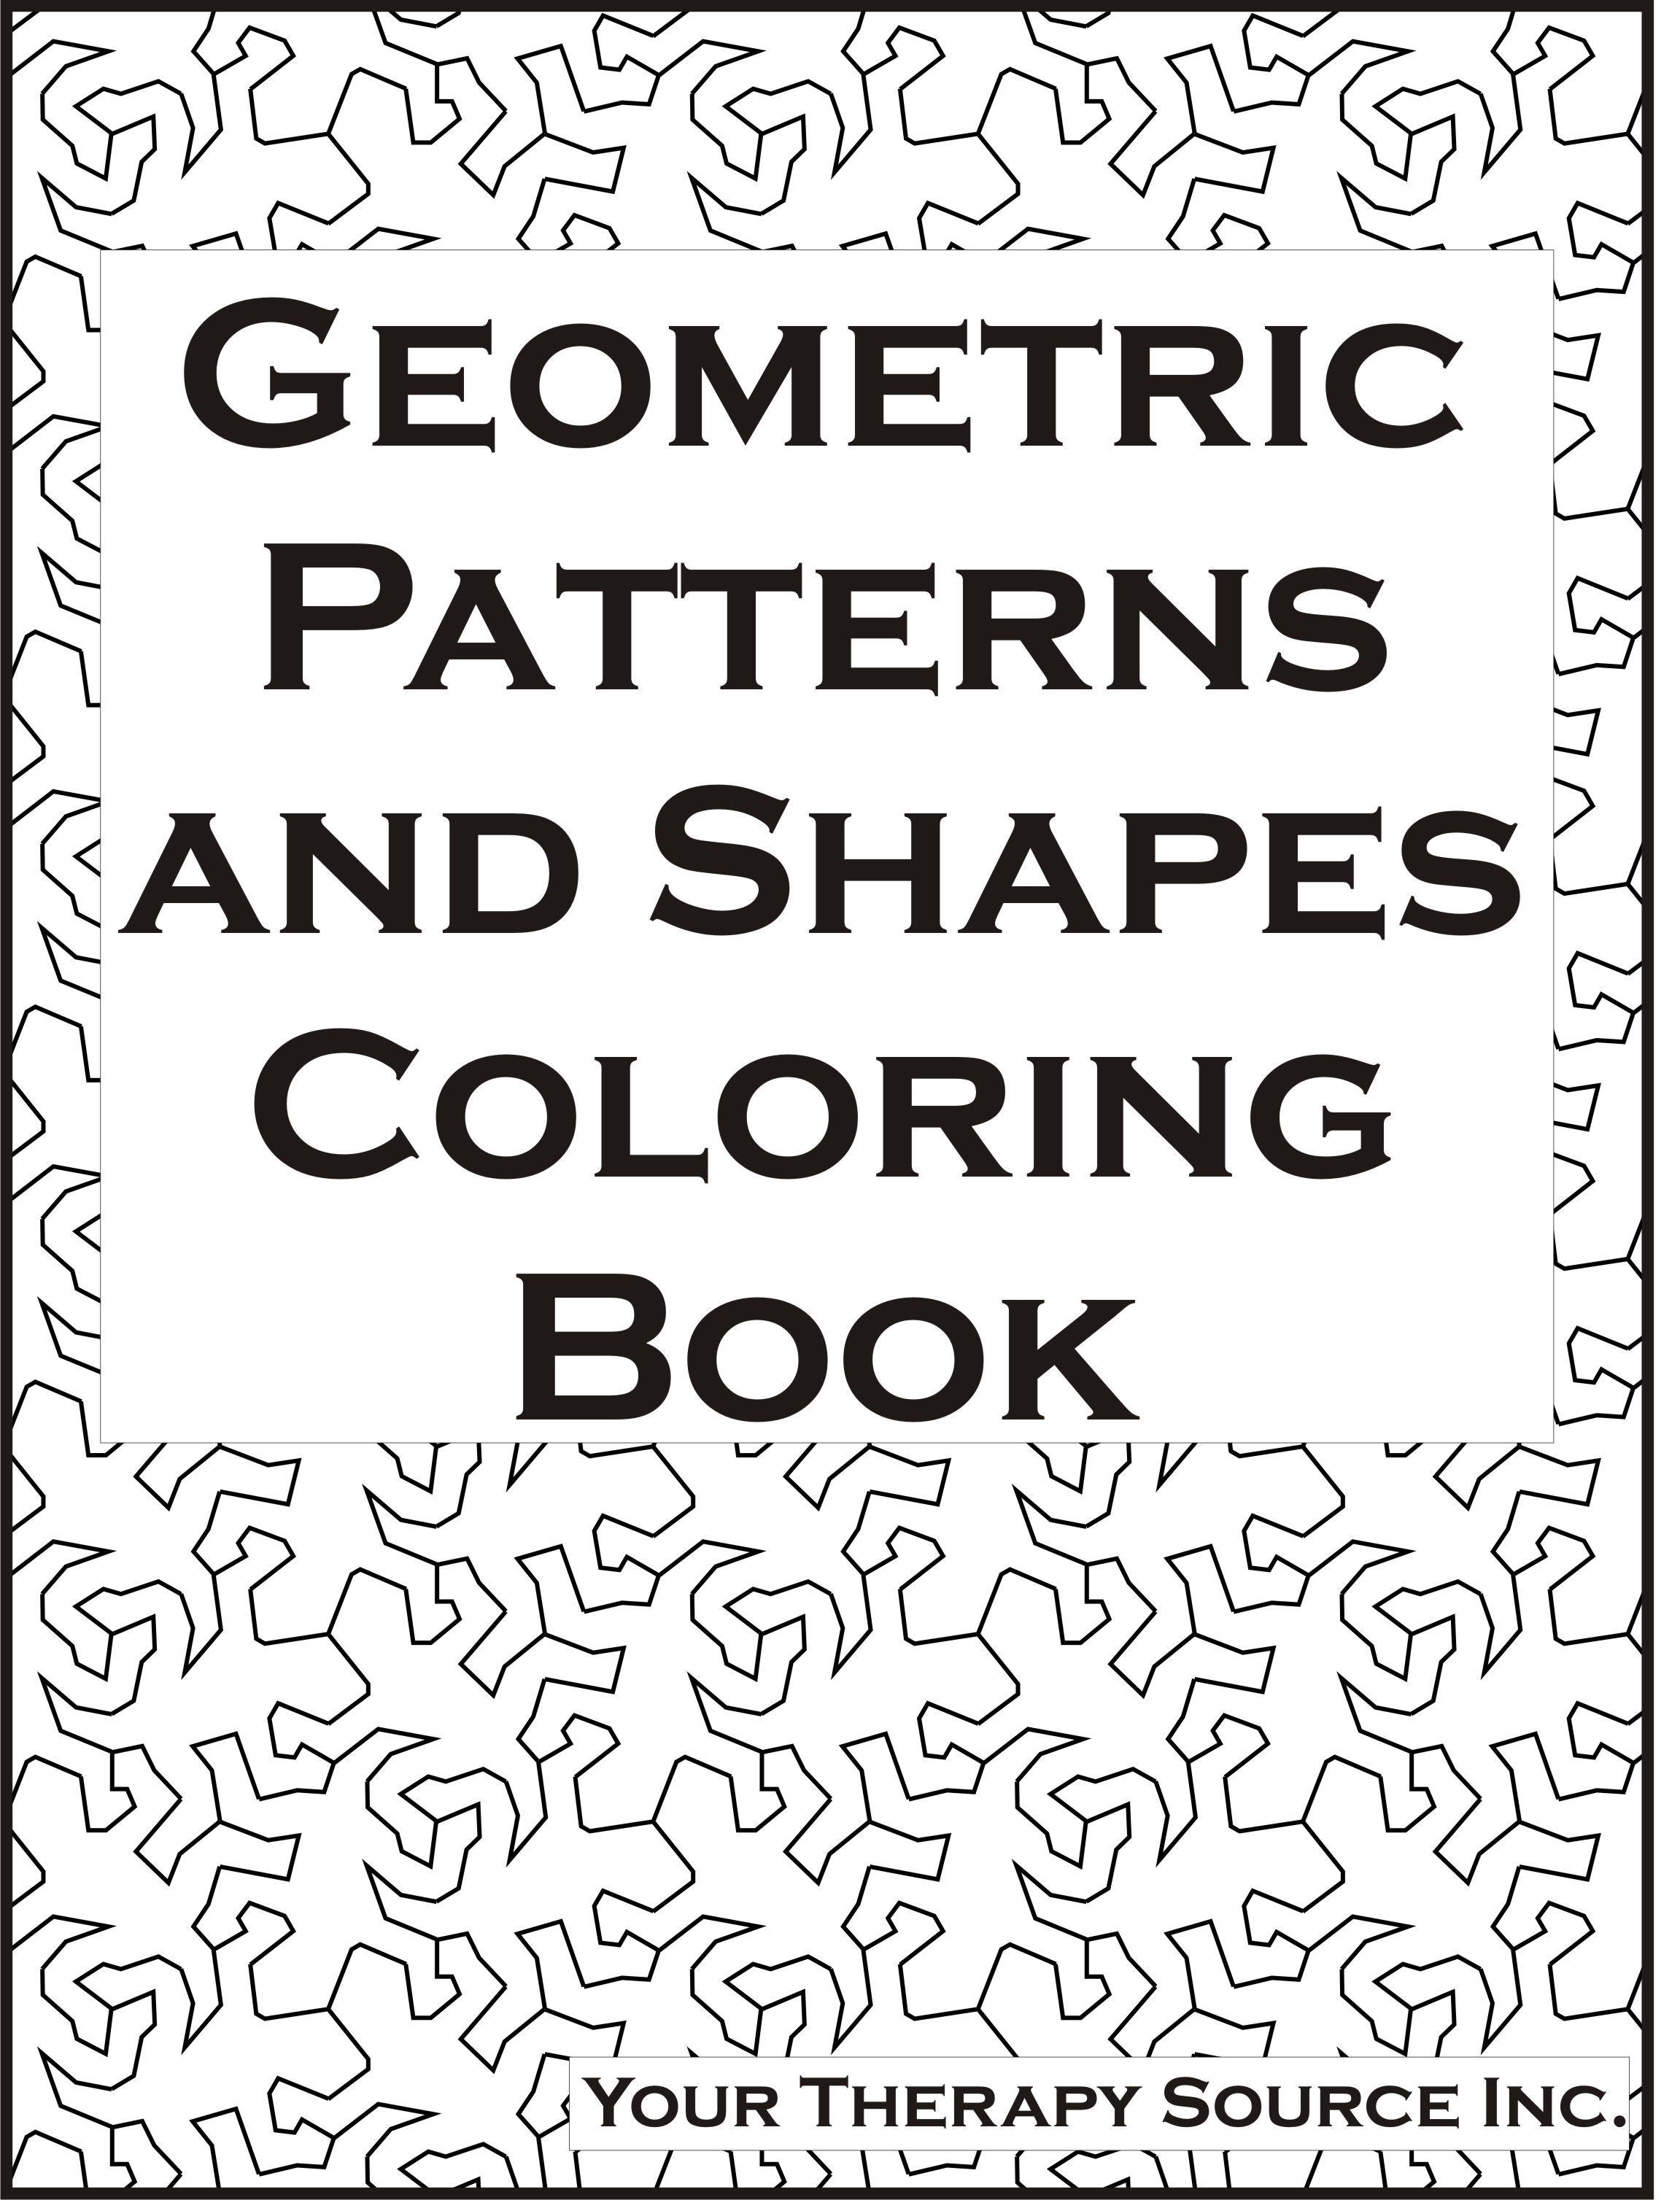 Geometric Patterns And Shapes Coloring Book Your Therapy Source